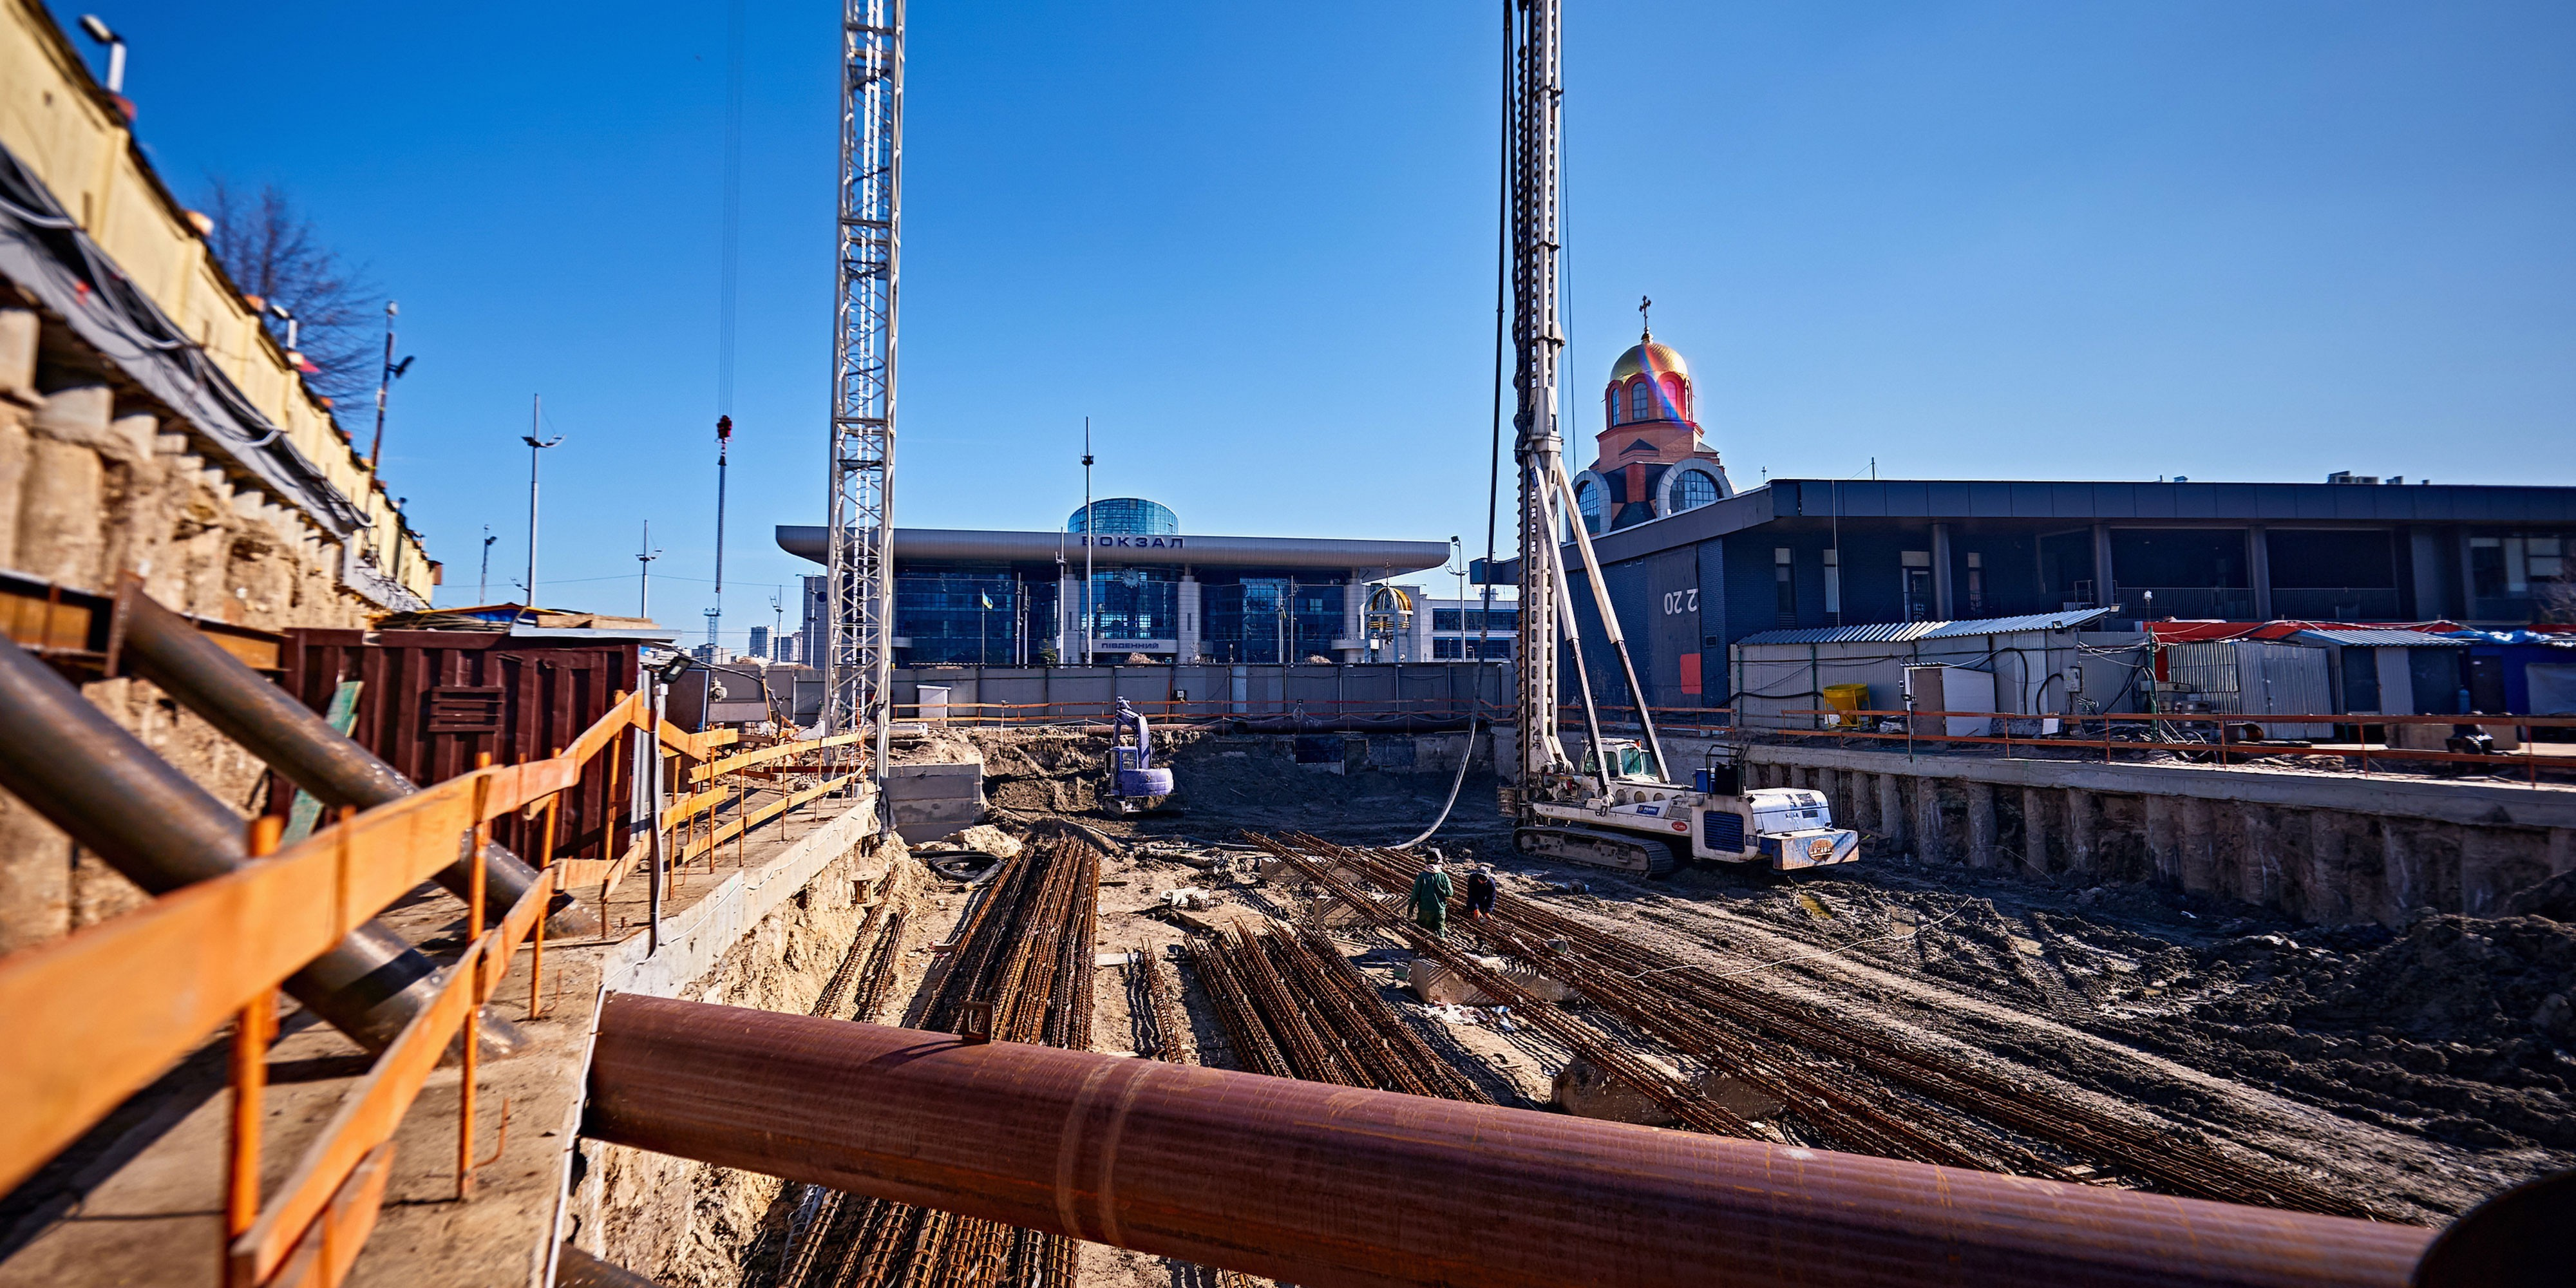 S1 Terminal construction progress. April 2020